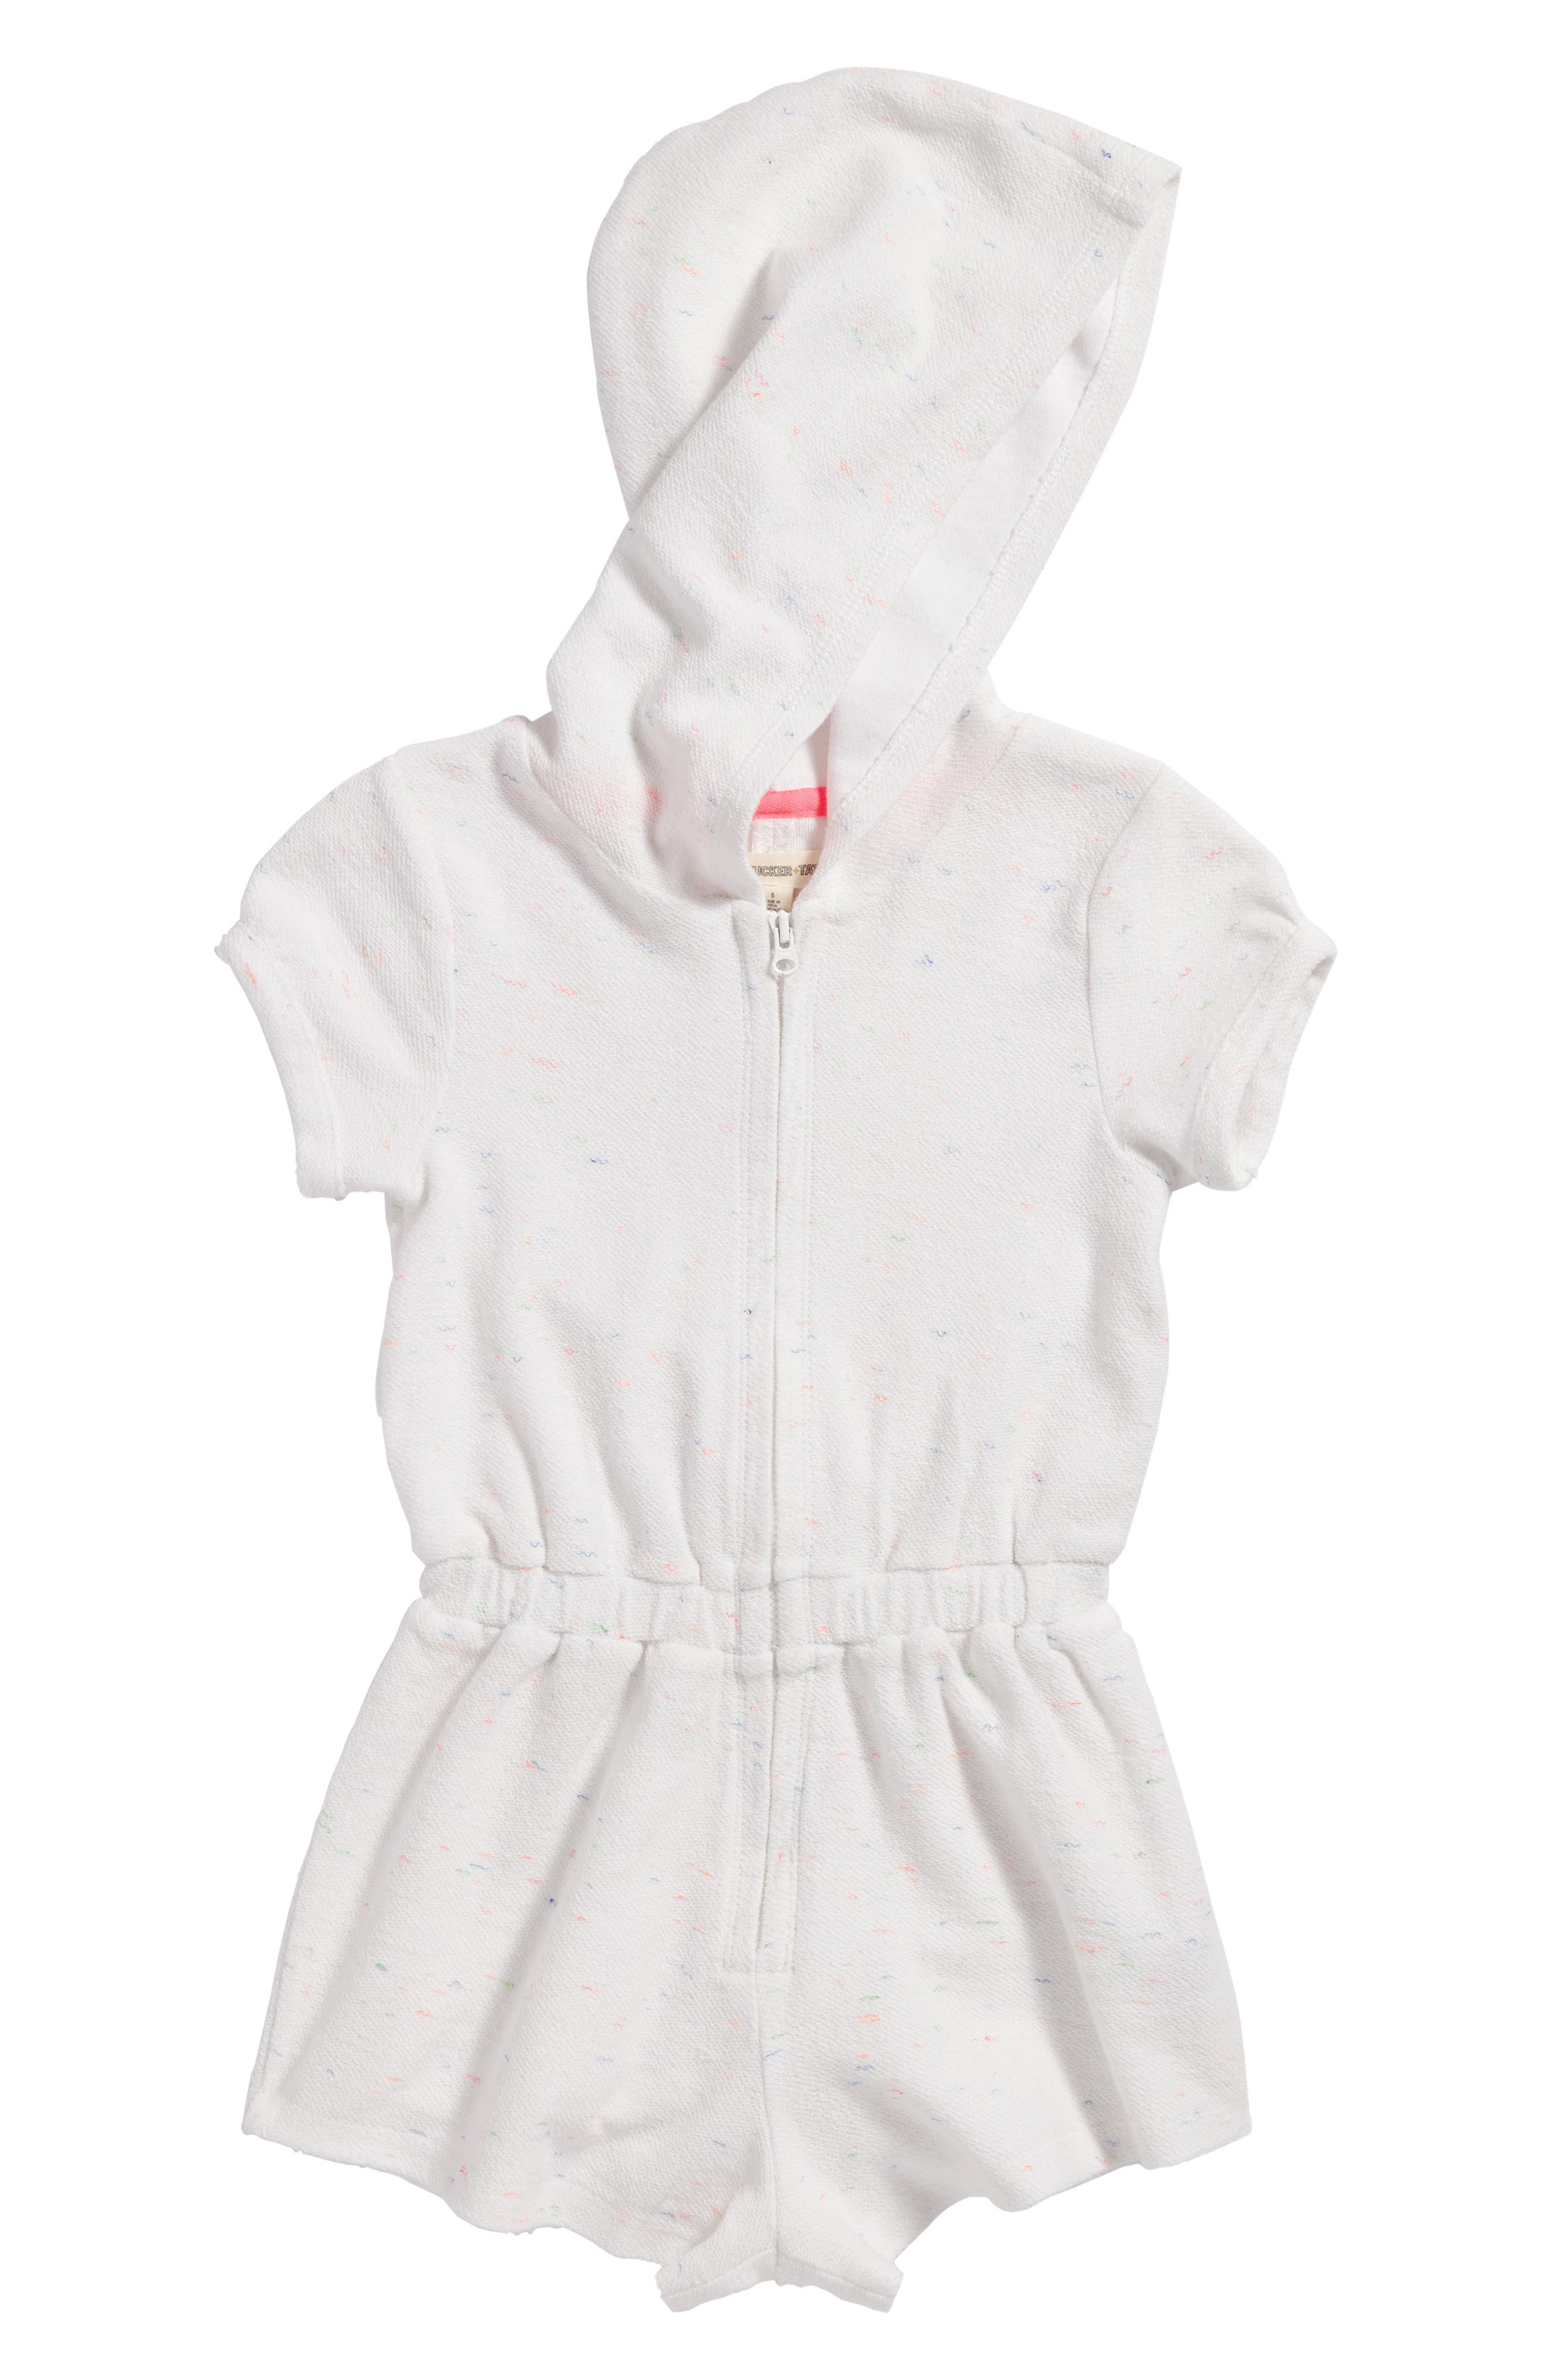 Terry Cover-Up Romper,                             Main thumbnail 1, color,                             100